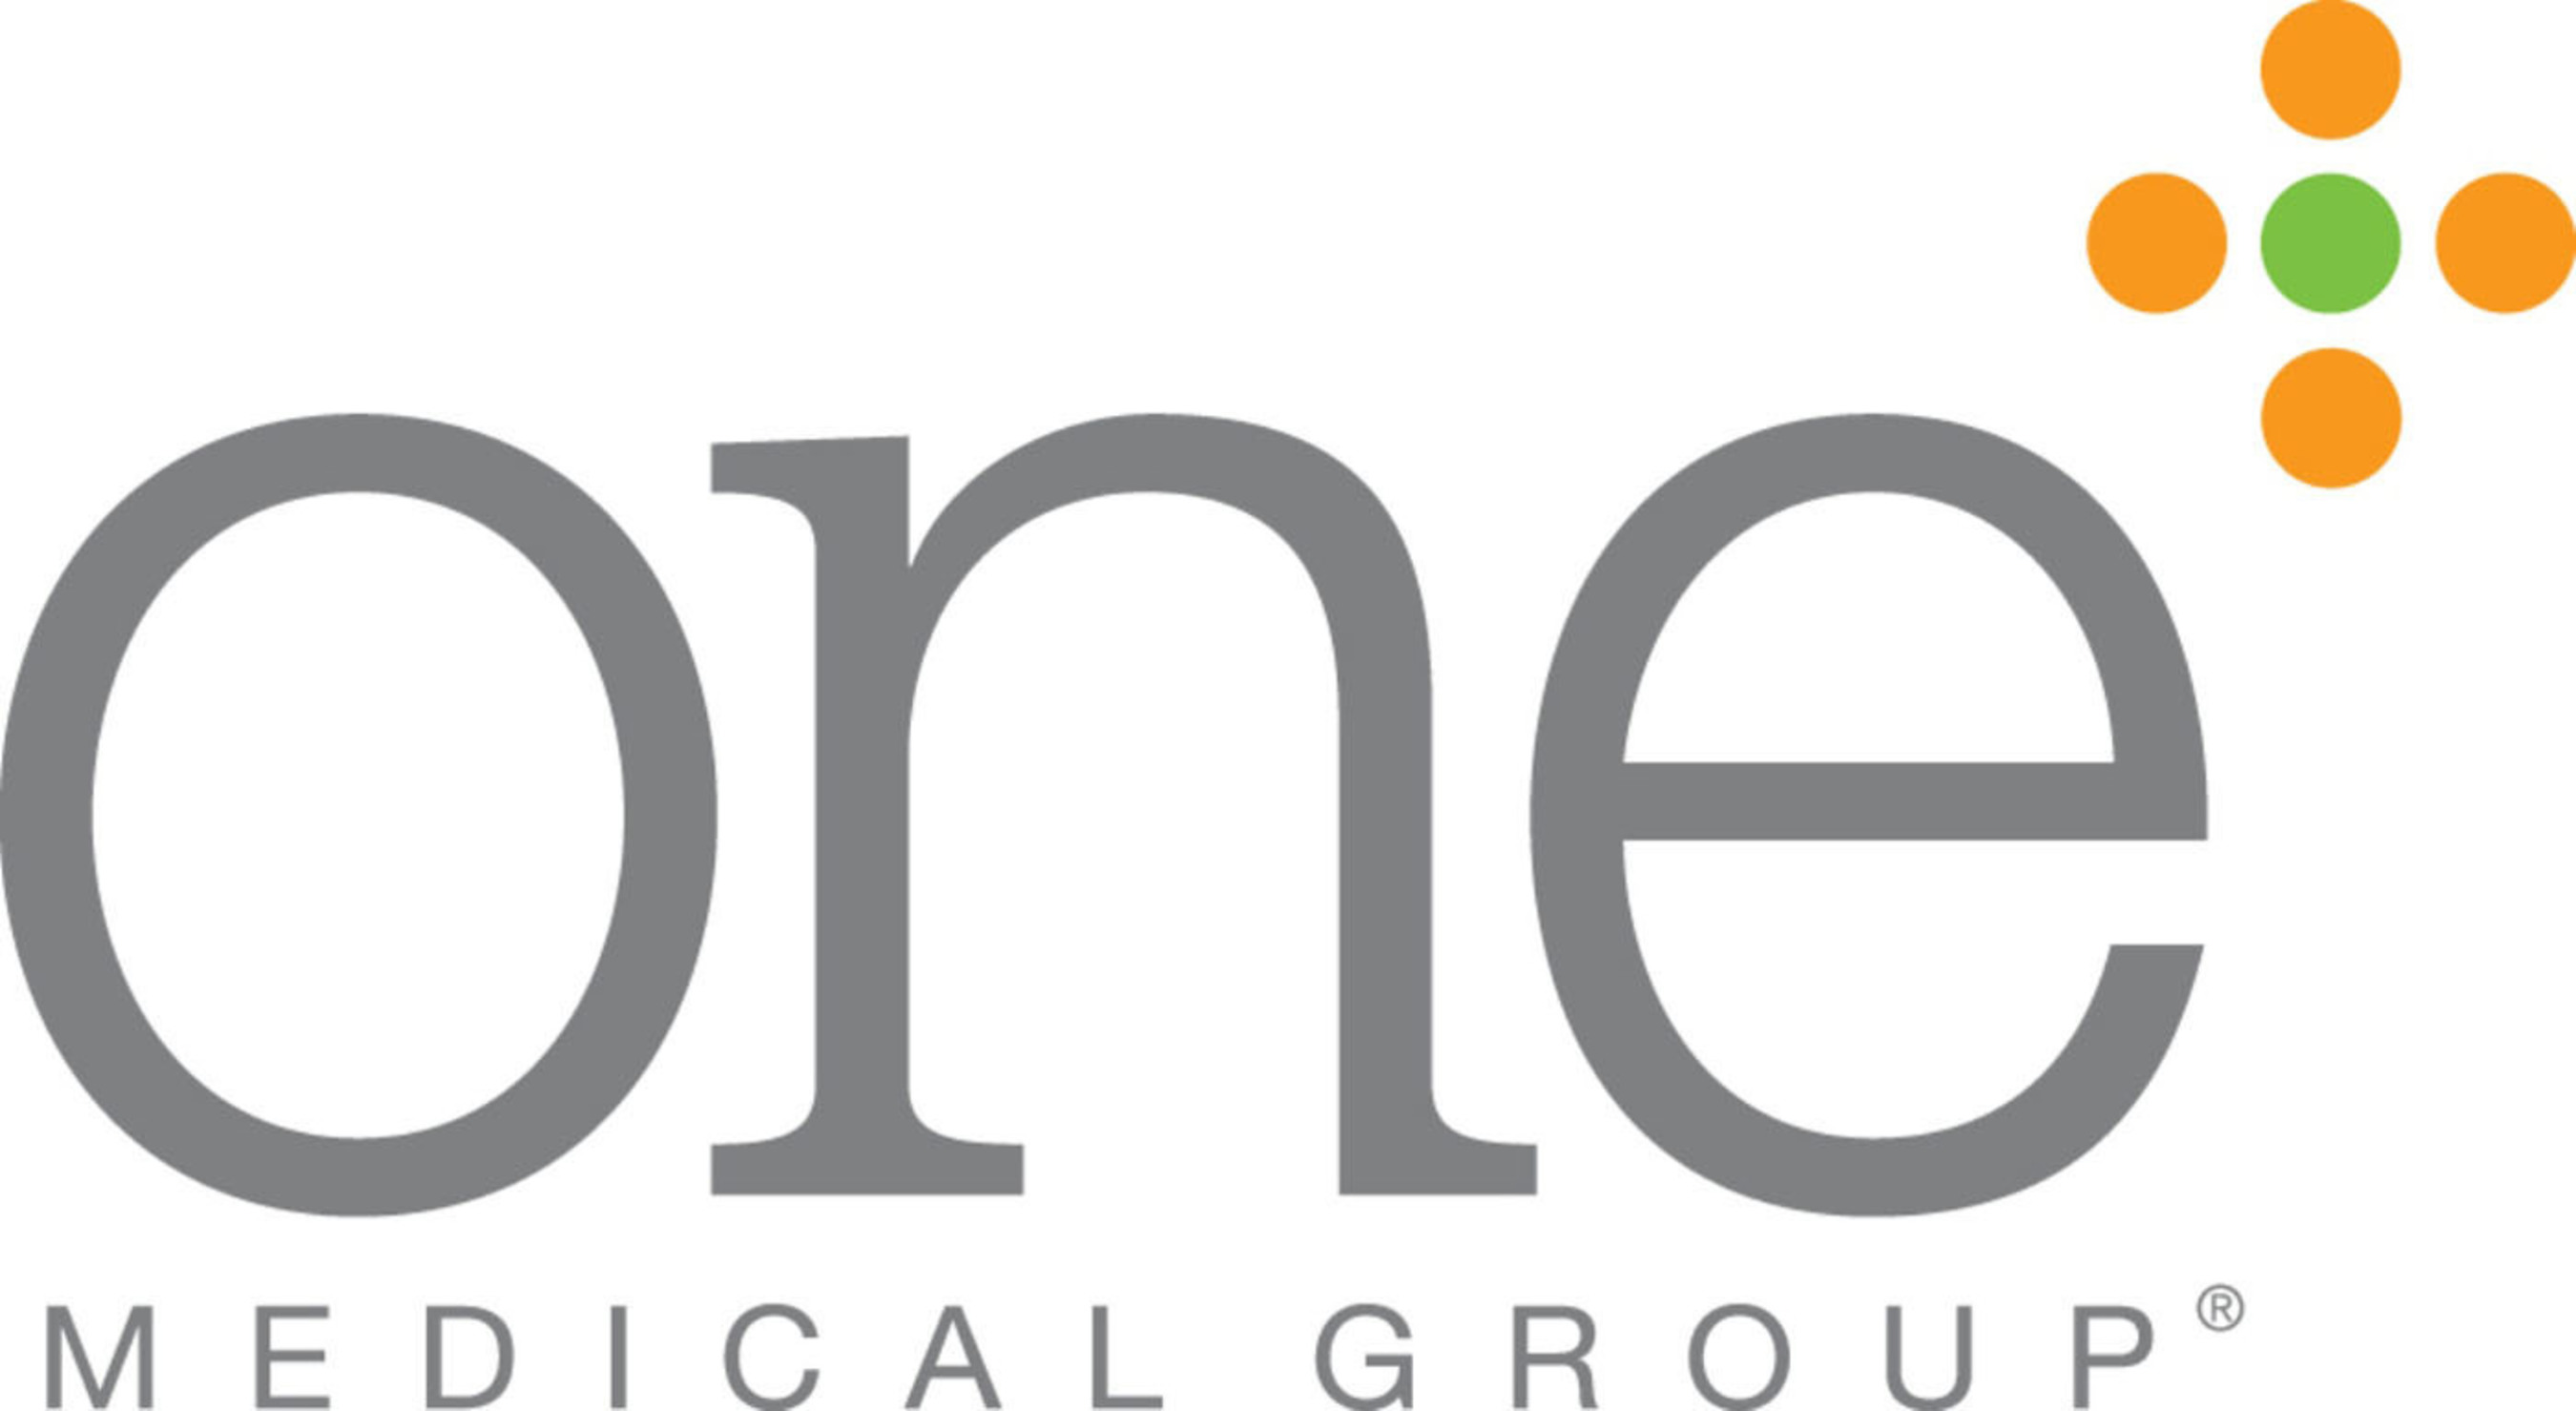 One Medical Group is the fastest-growing primary care network in the country.